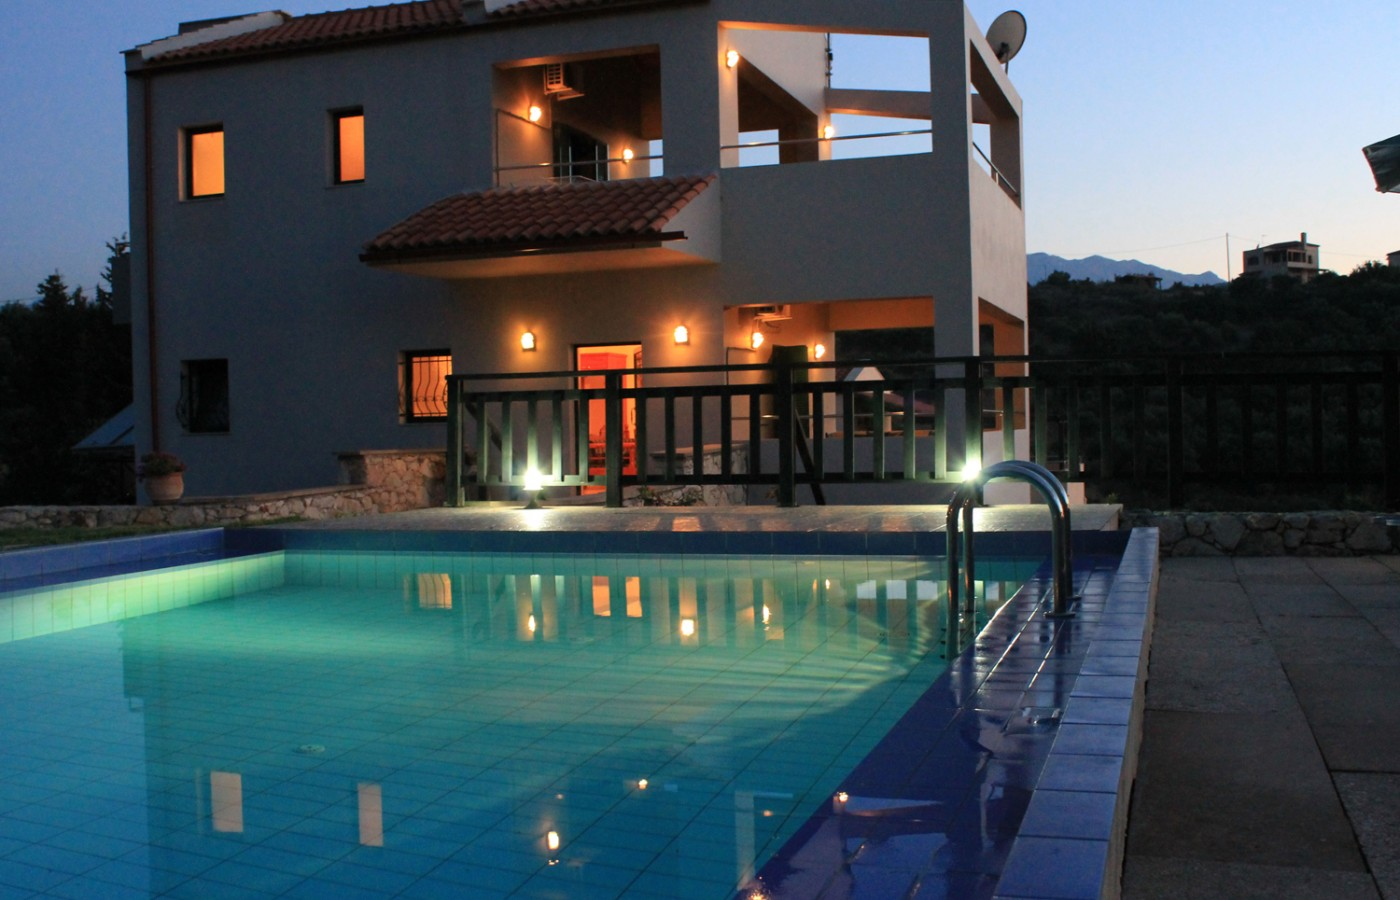 villas almirida night view - Villas-Almyrida - The best Almyrida beach view